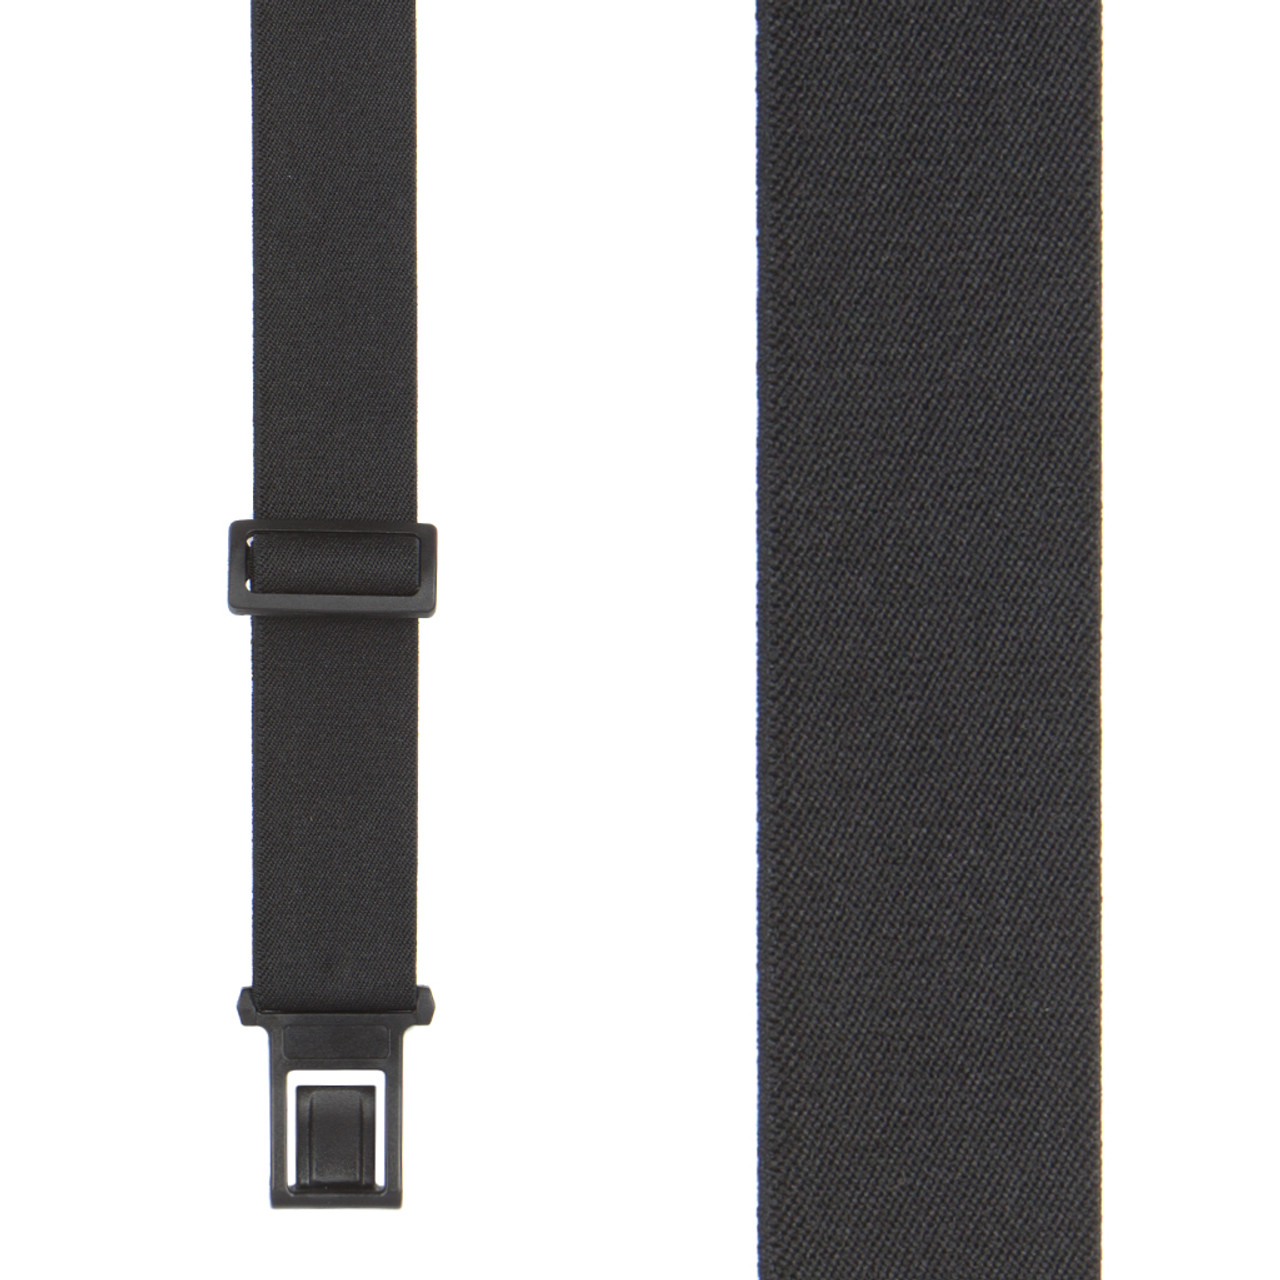 e6785bdb6 Perry Suspenders - Front View - Black 1.5-Inch Elastic